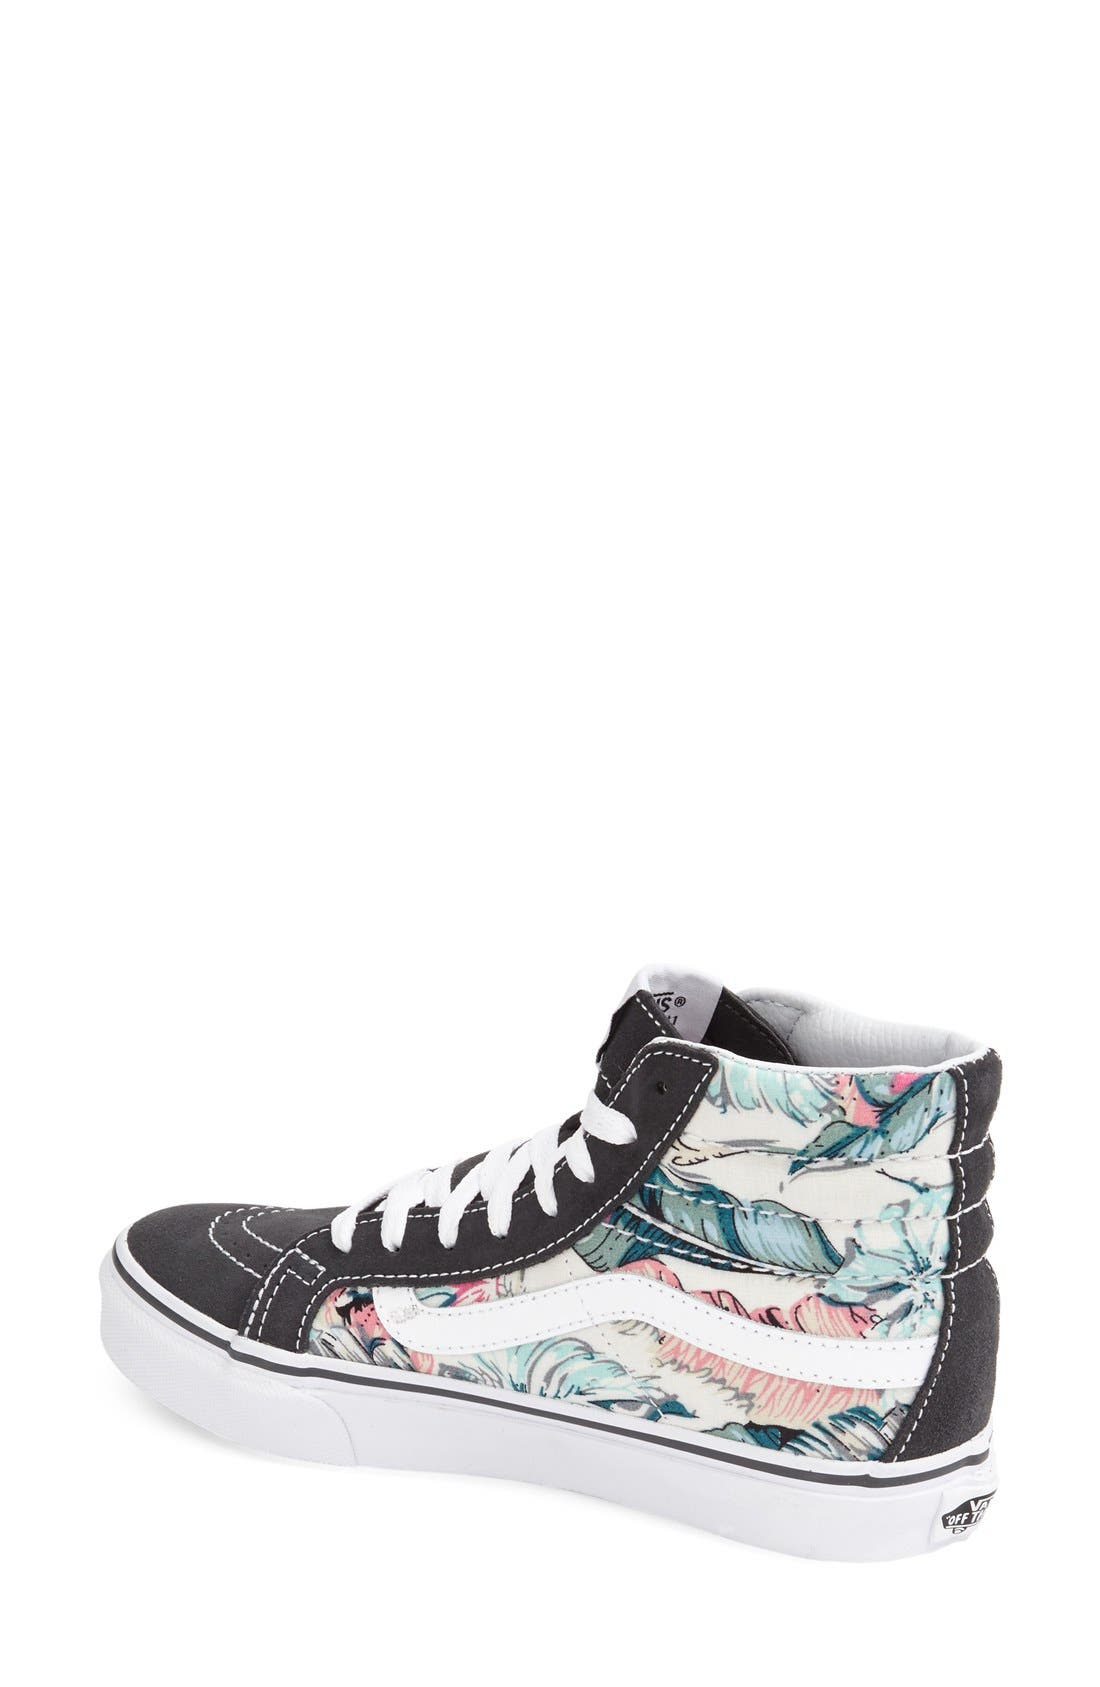 Alternate Image 2  - Vans Sk-8 Hi Slim Sneaker (Women)